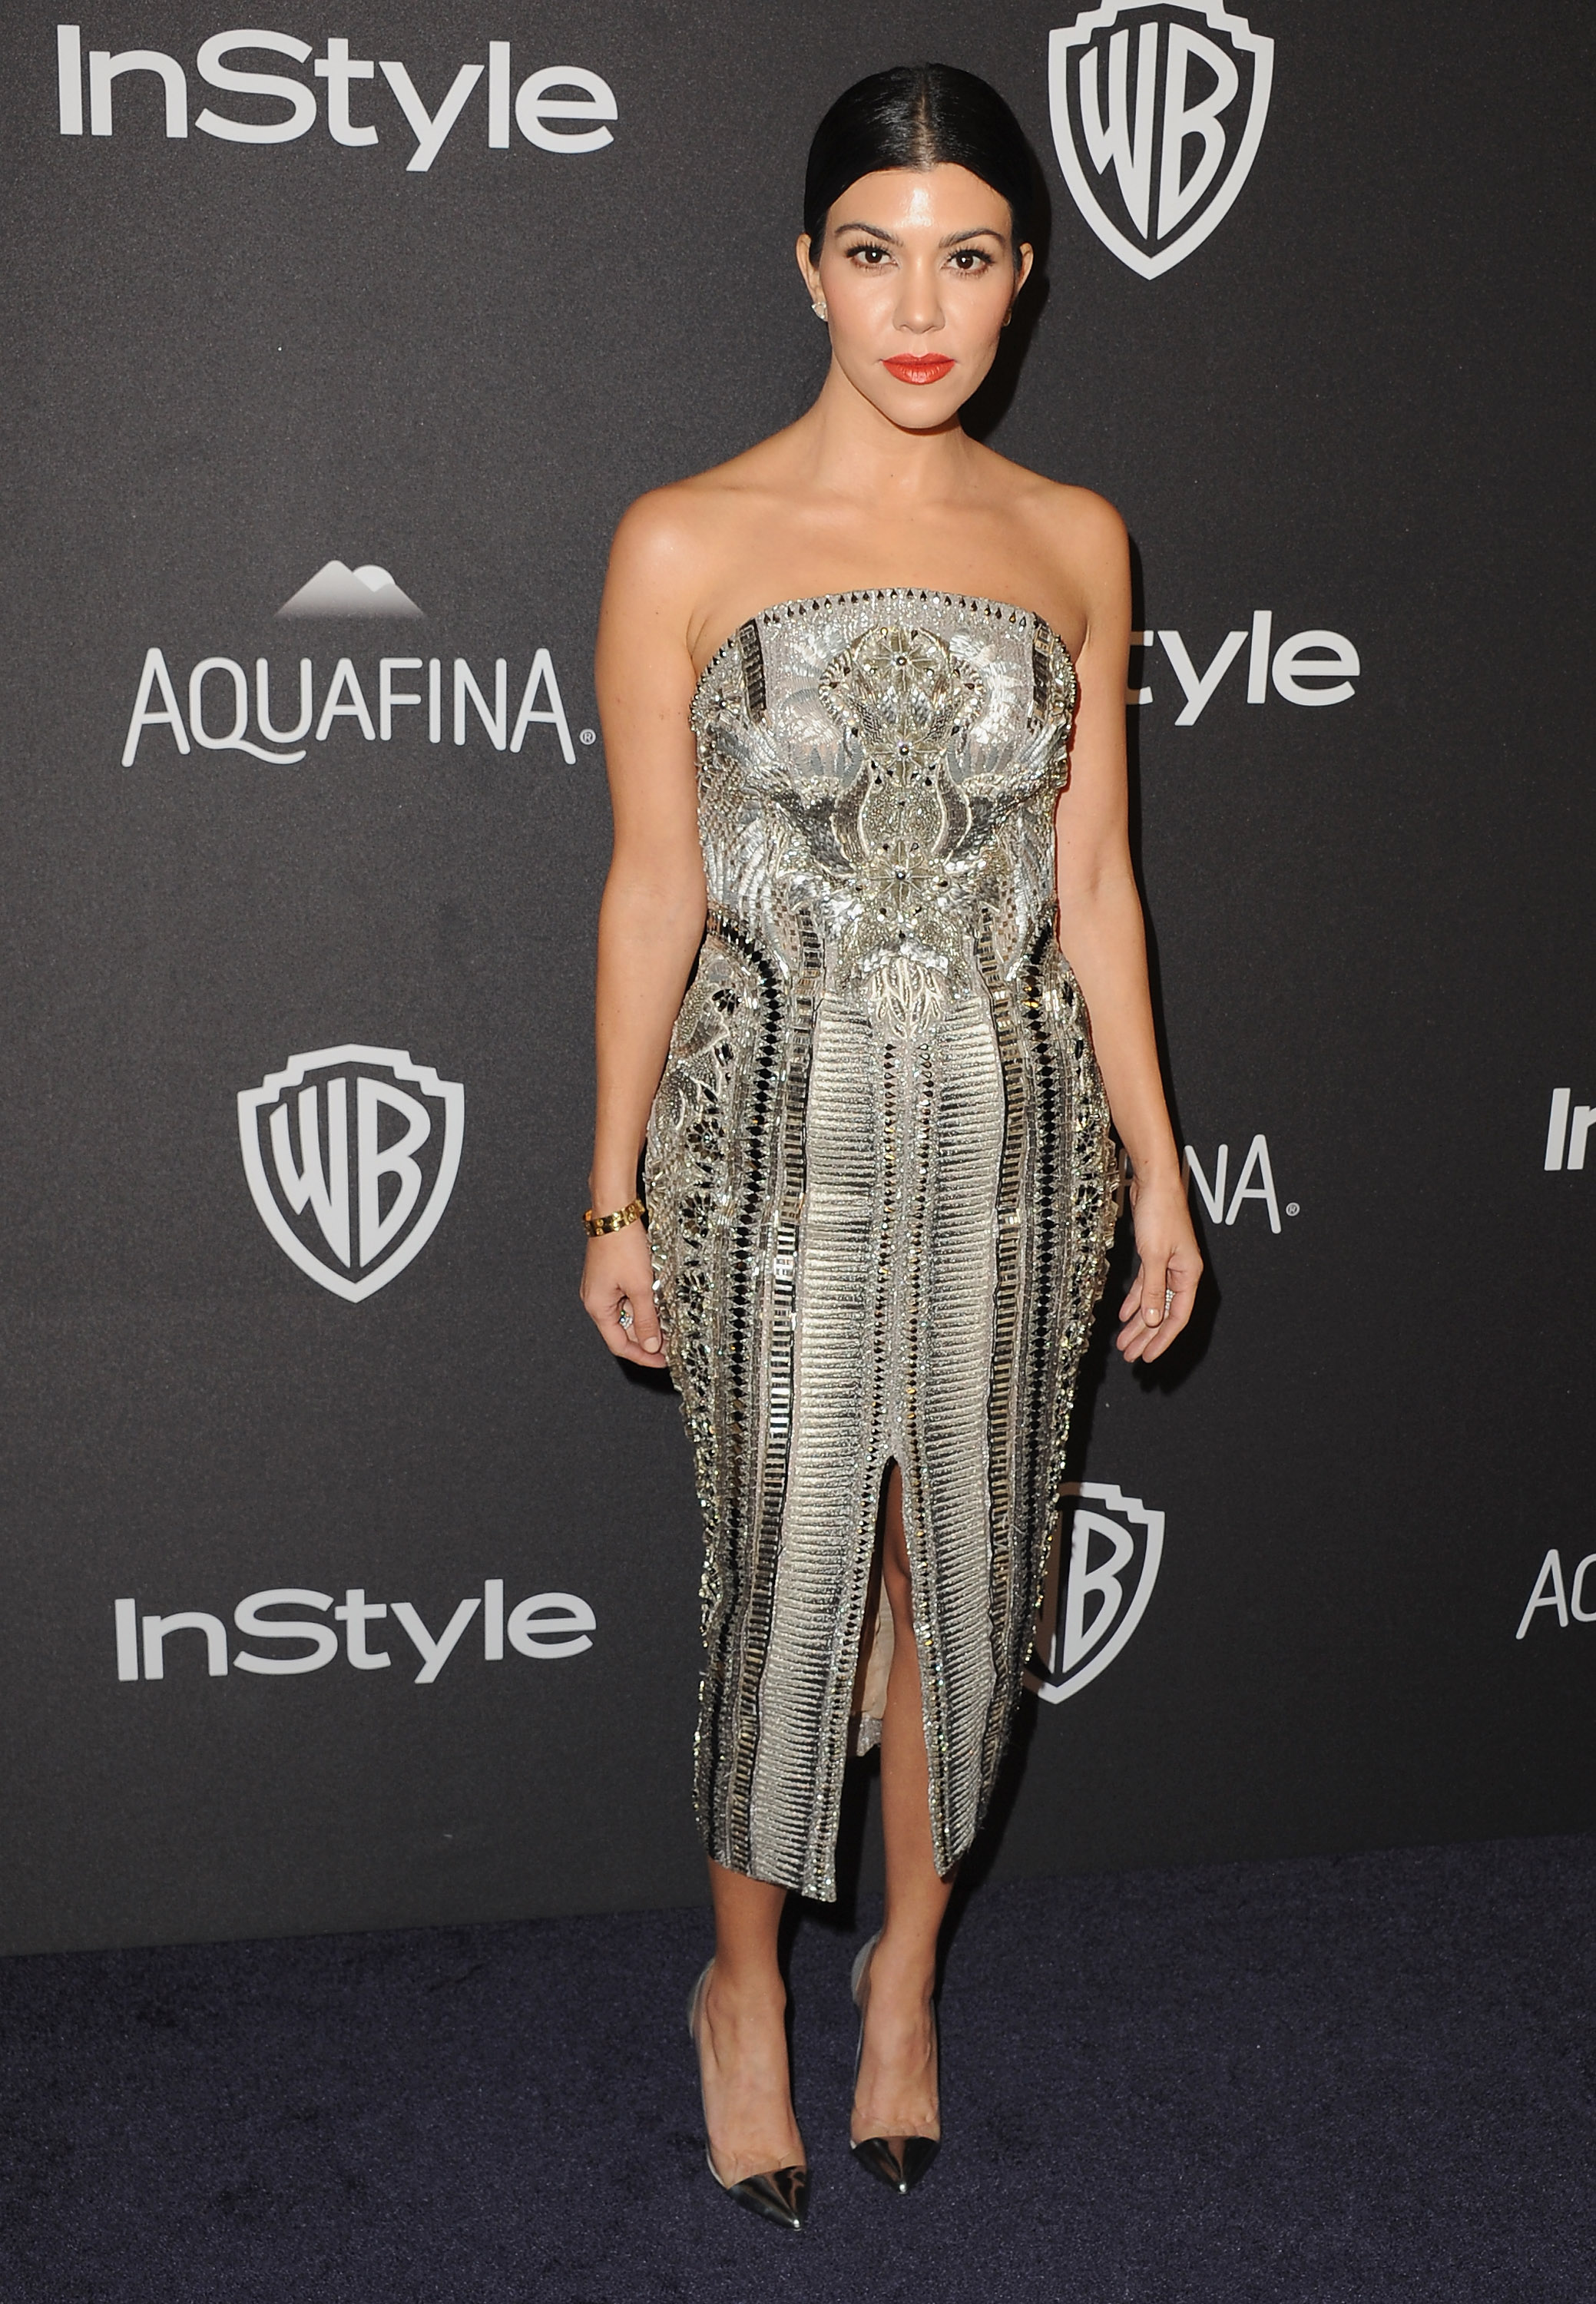 Golden Globes After Party Dresses - Golden Globes 2016 Party Looks